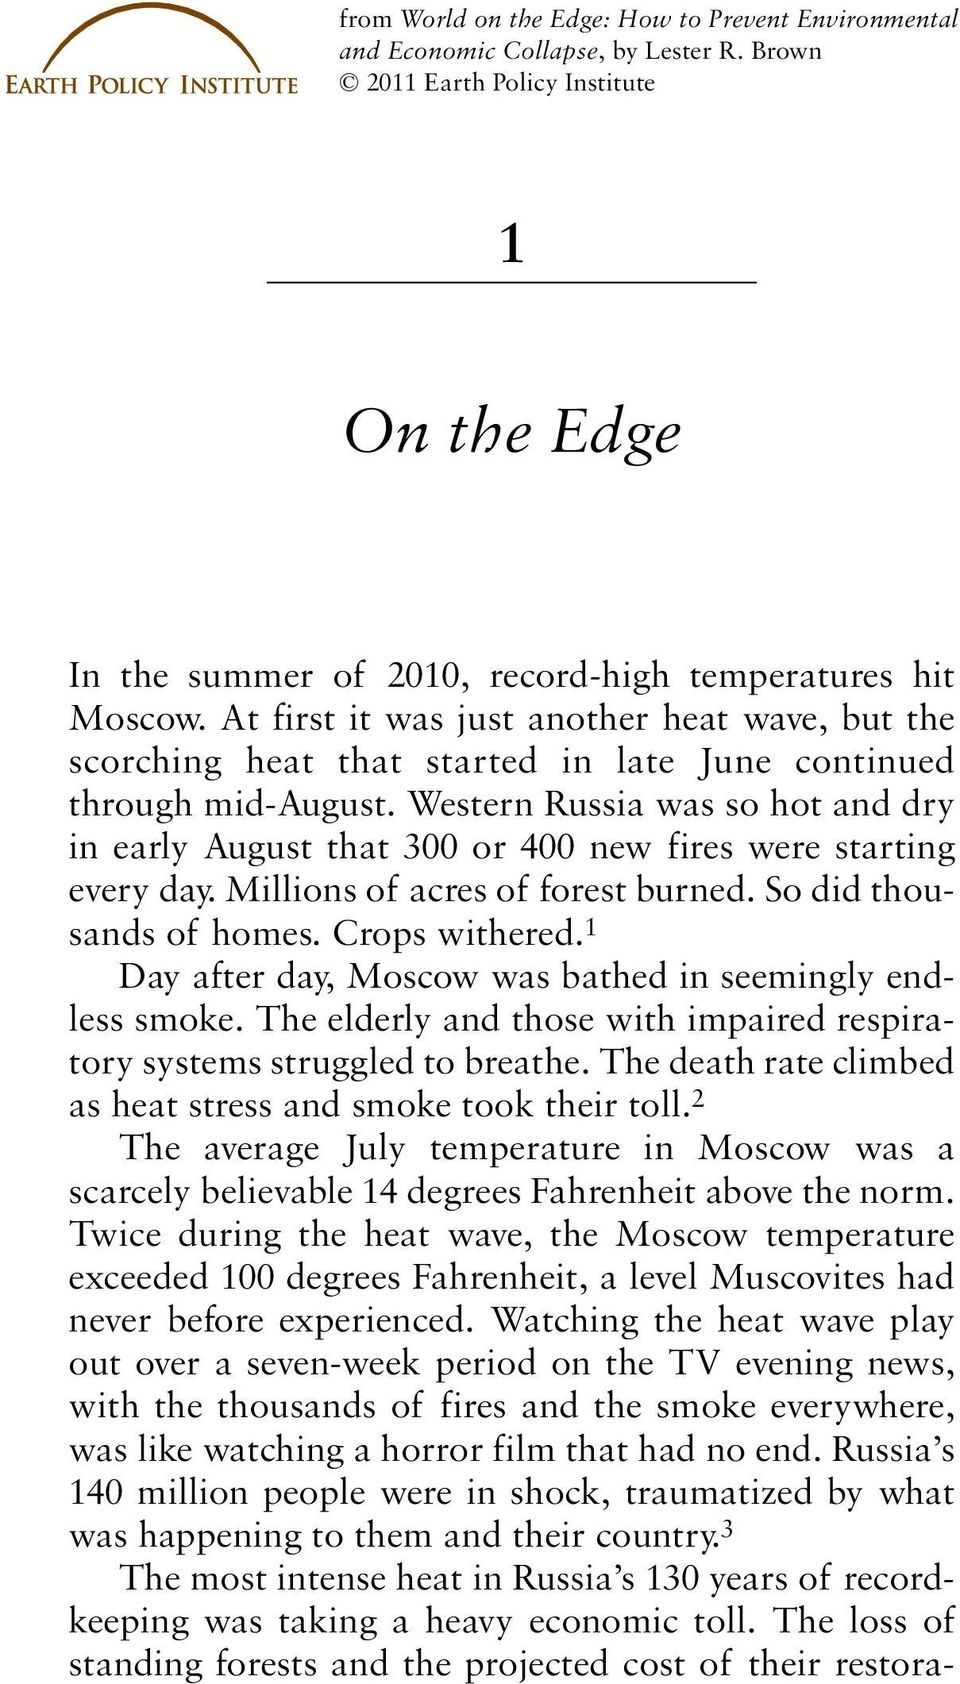 Western Russia was so hot and dry in early August that 300 or 400 new fires were starting every day. Millions of acres of forest burned. So did thousands of homes. Crops withered.